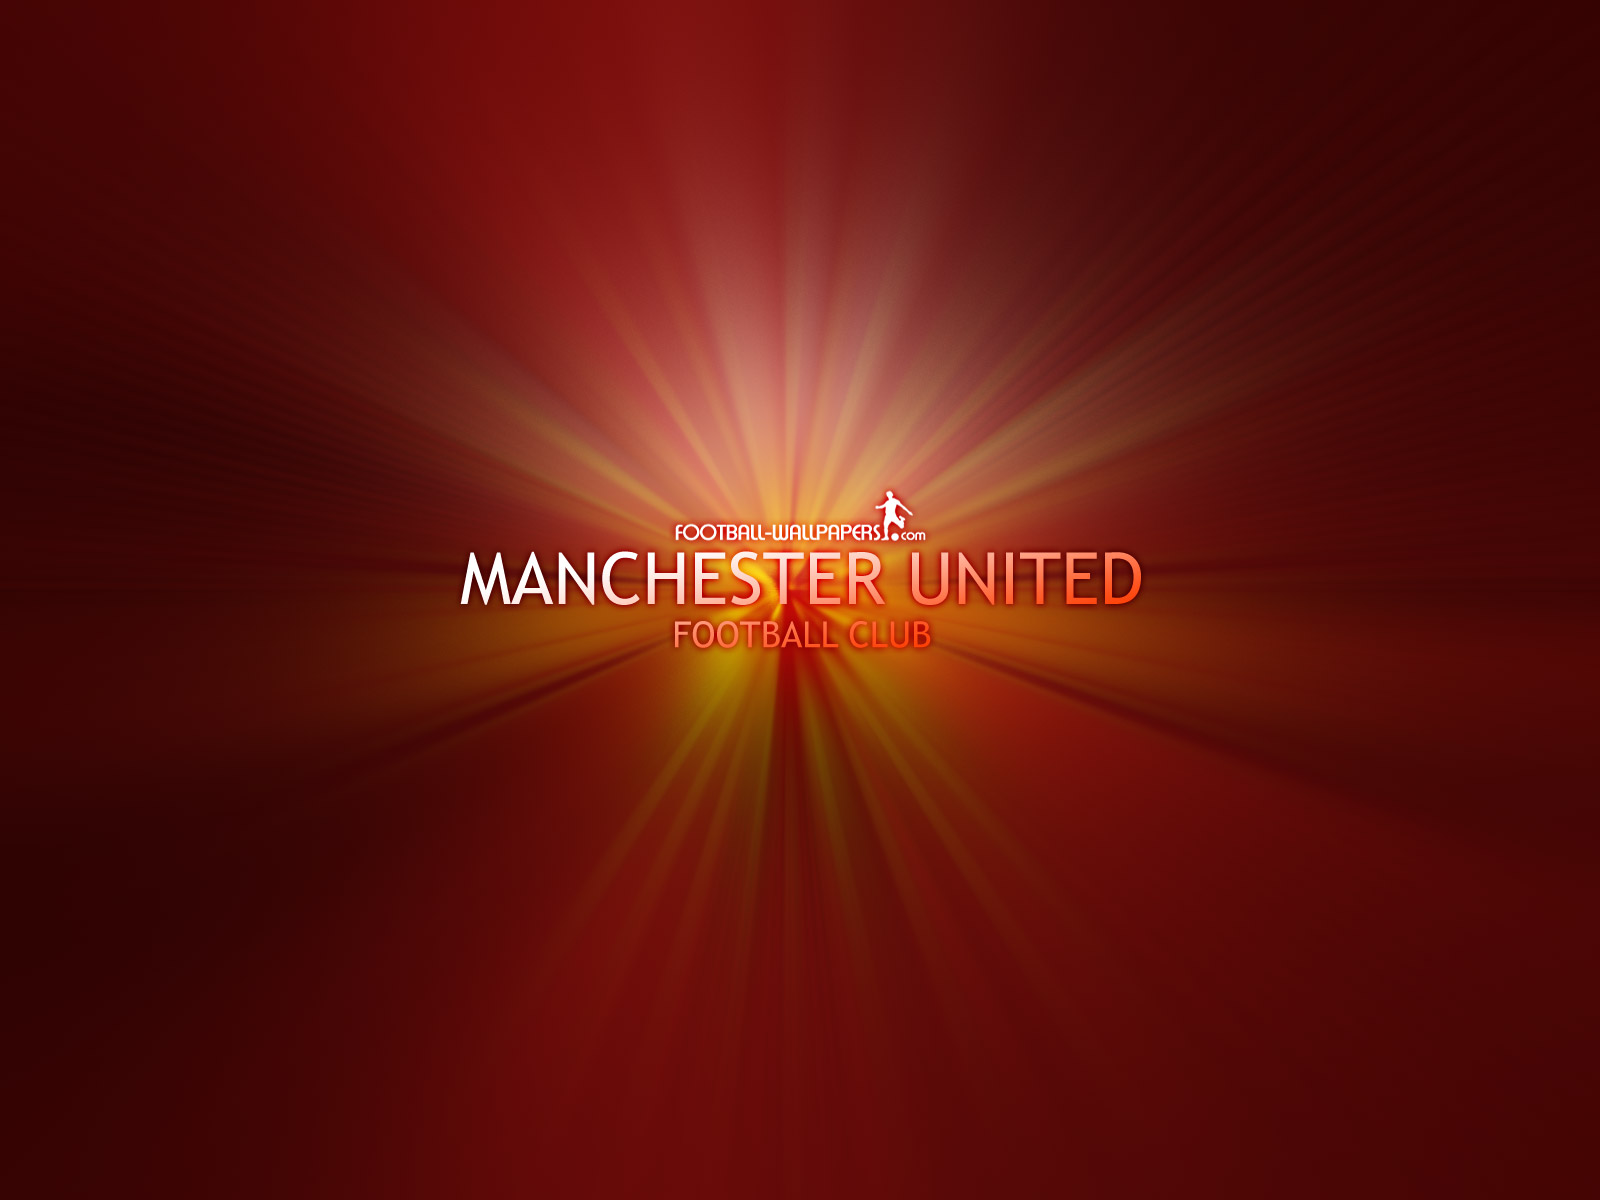 manchester united wallpapers hdimage - photo #20